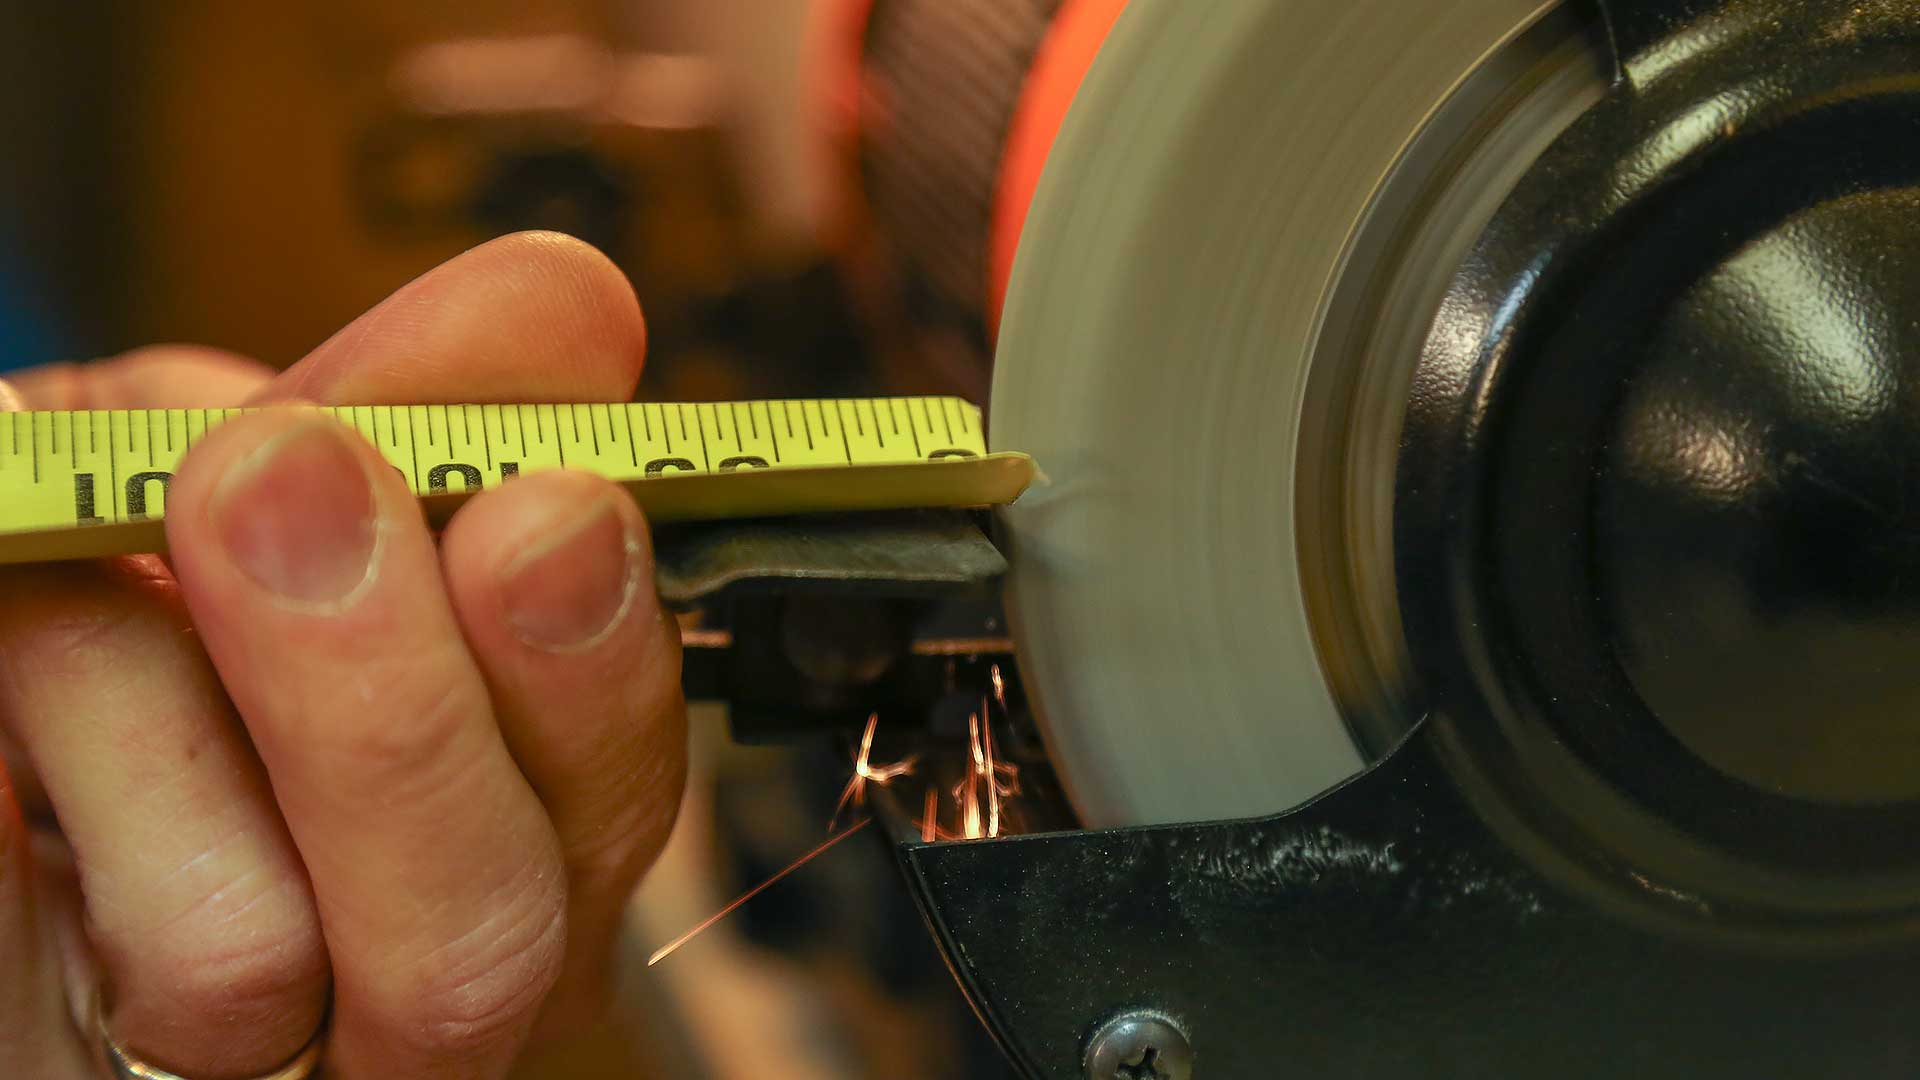 Placing tape measure near bench grinder to work on its edges